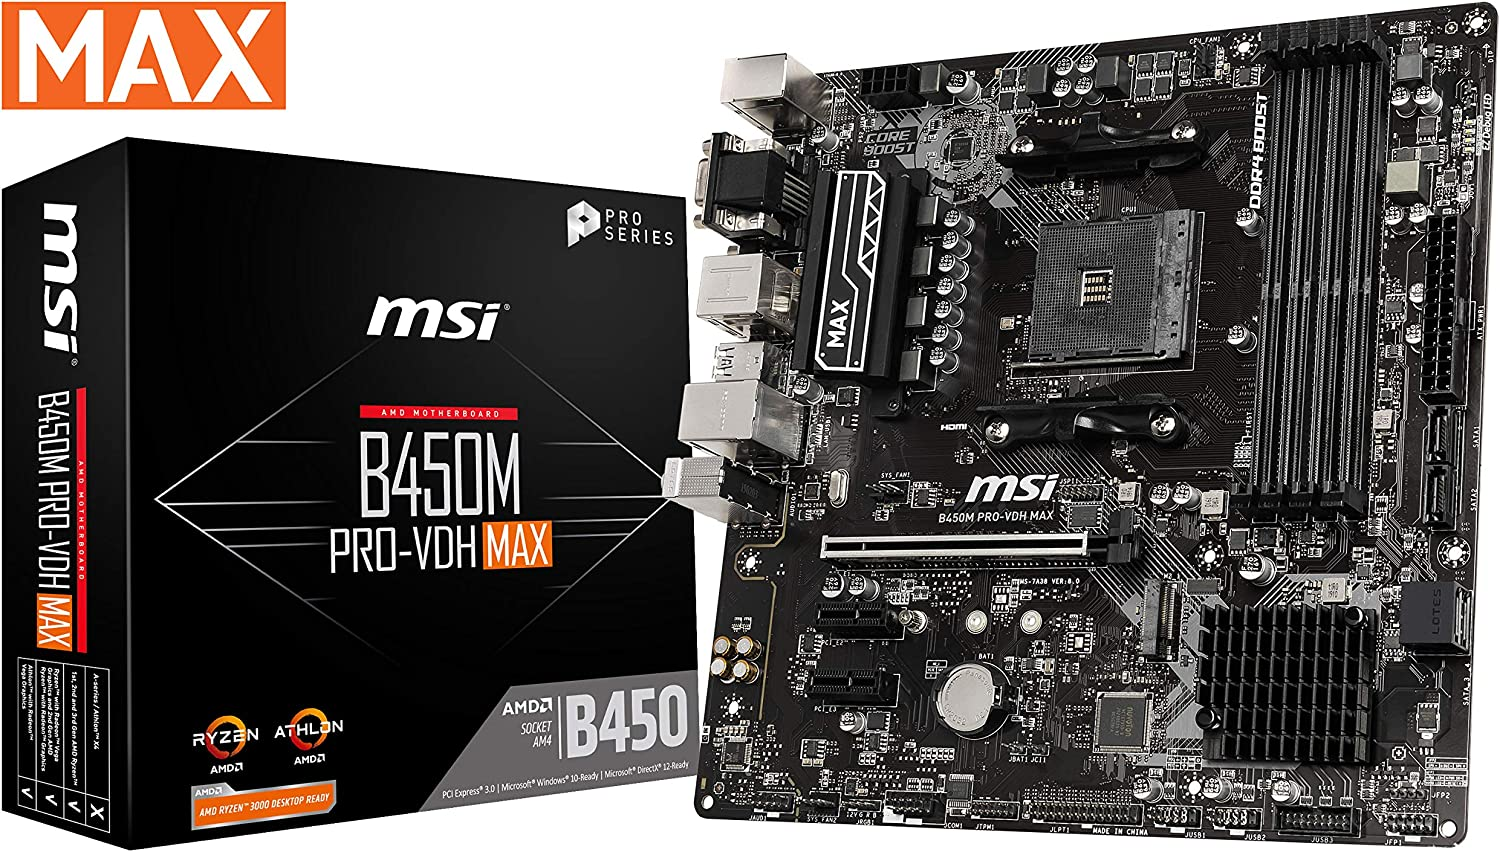 MSI ProSeries AMD Ryzen 2ND and 3rd Gen AM4 M.2 USB 3 DDR4 D-Sub DVI HDMI Micro-ATX Motherboard (B450M PRO-VDH Max)